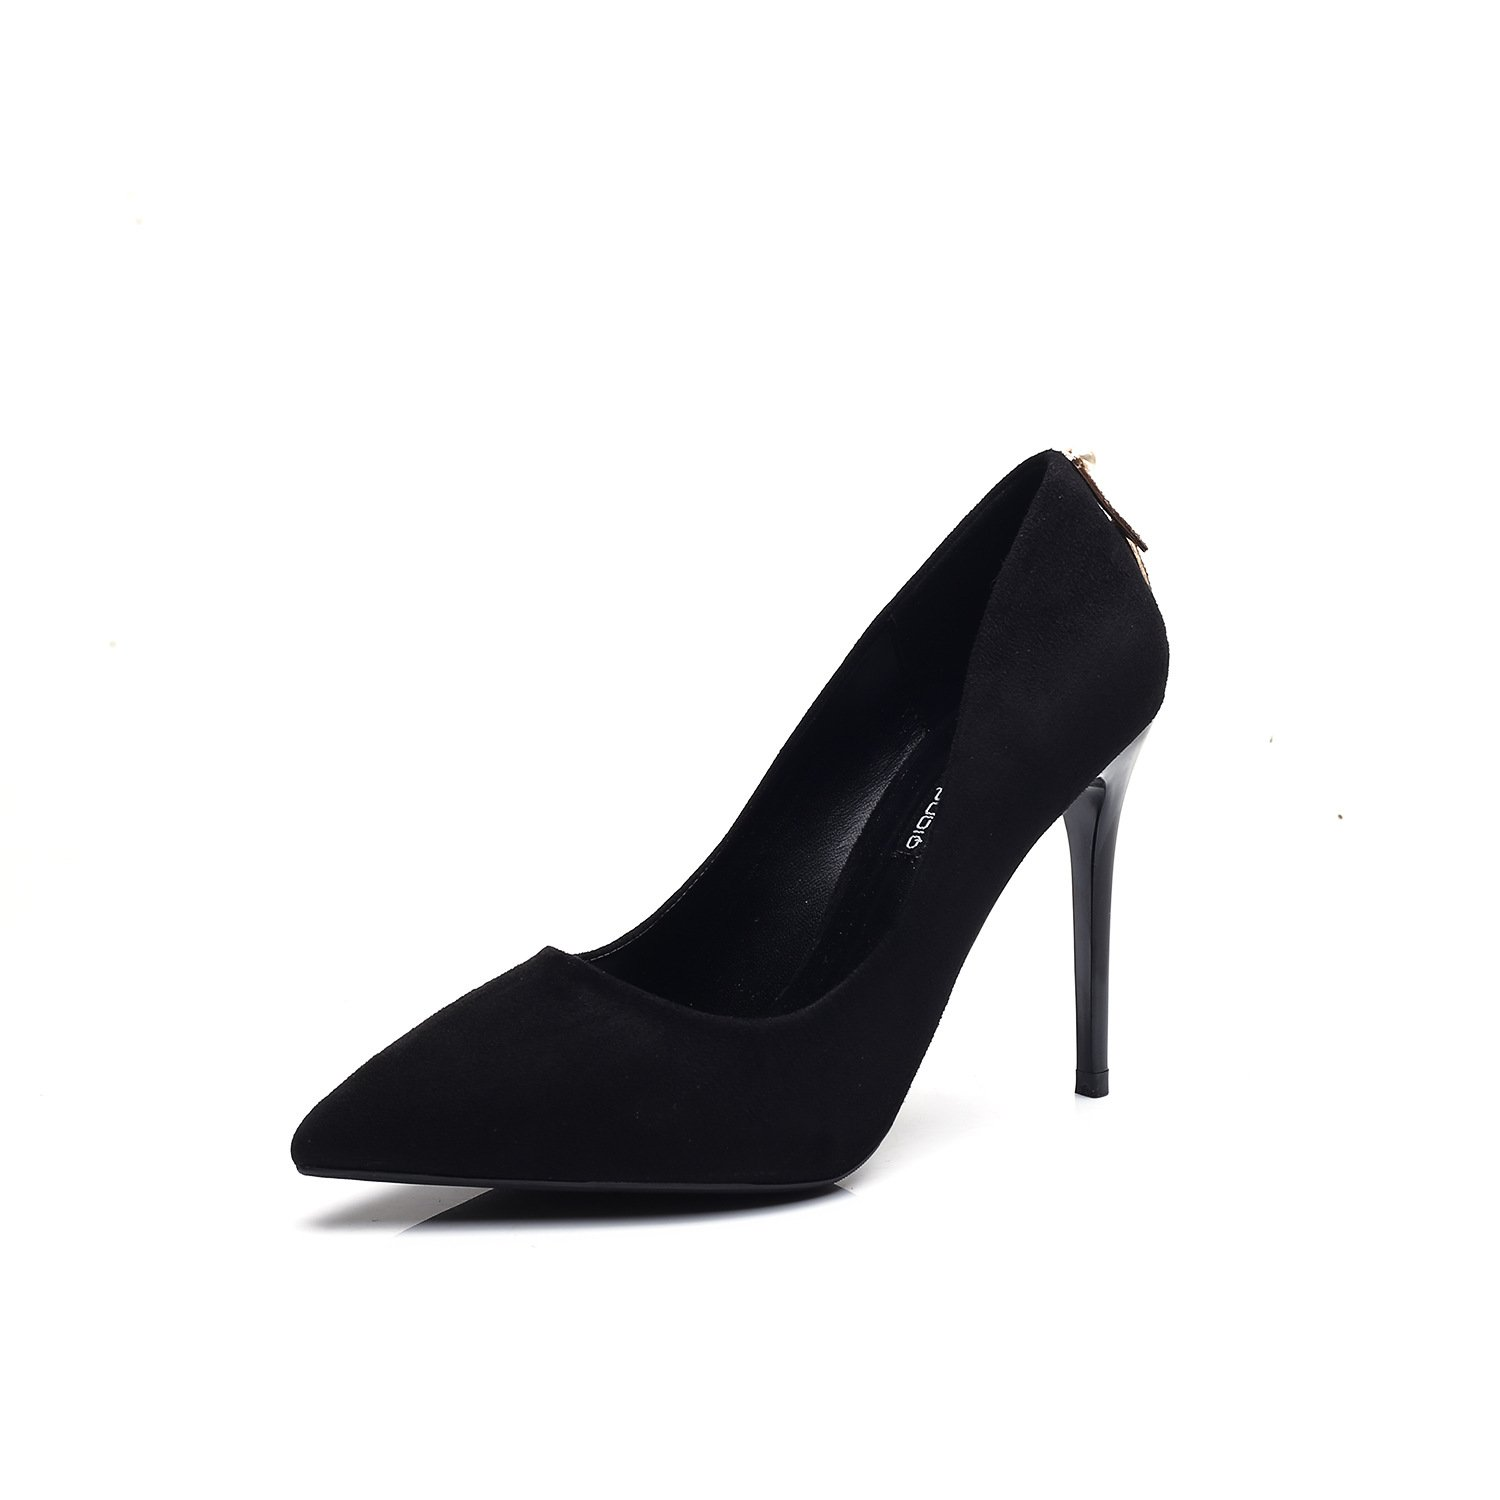 High-heeled shoes with a sexy fine tip waterproof Single Black, Black,34